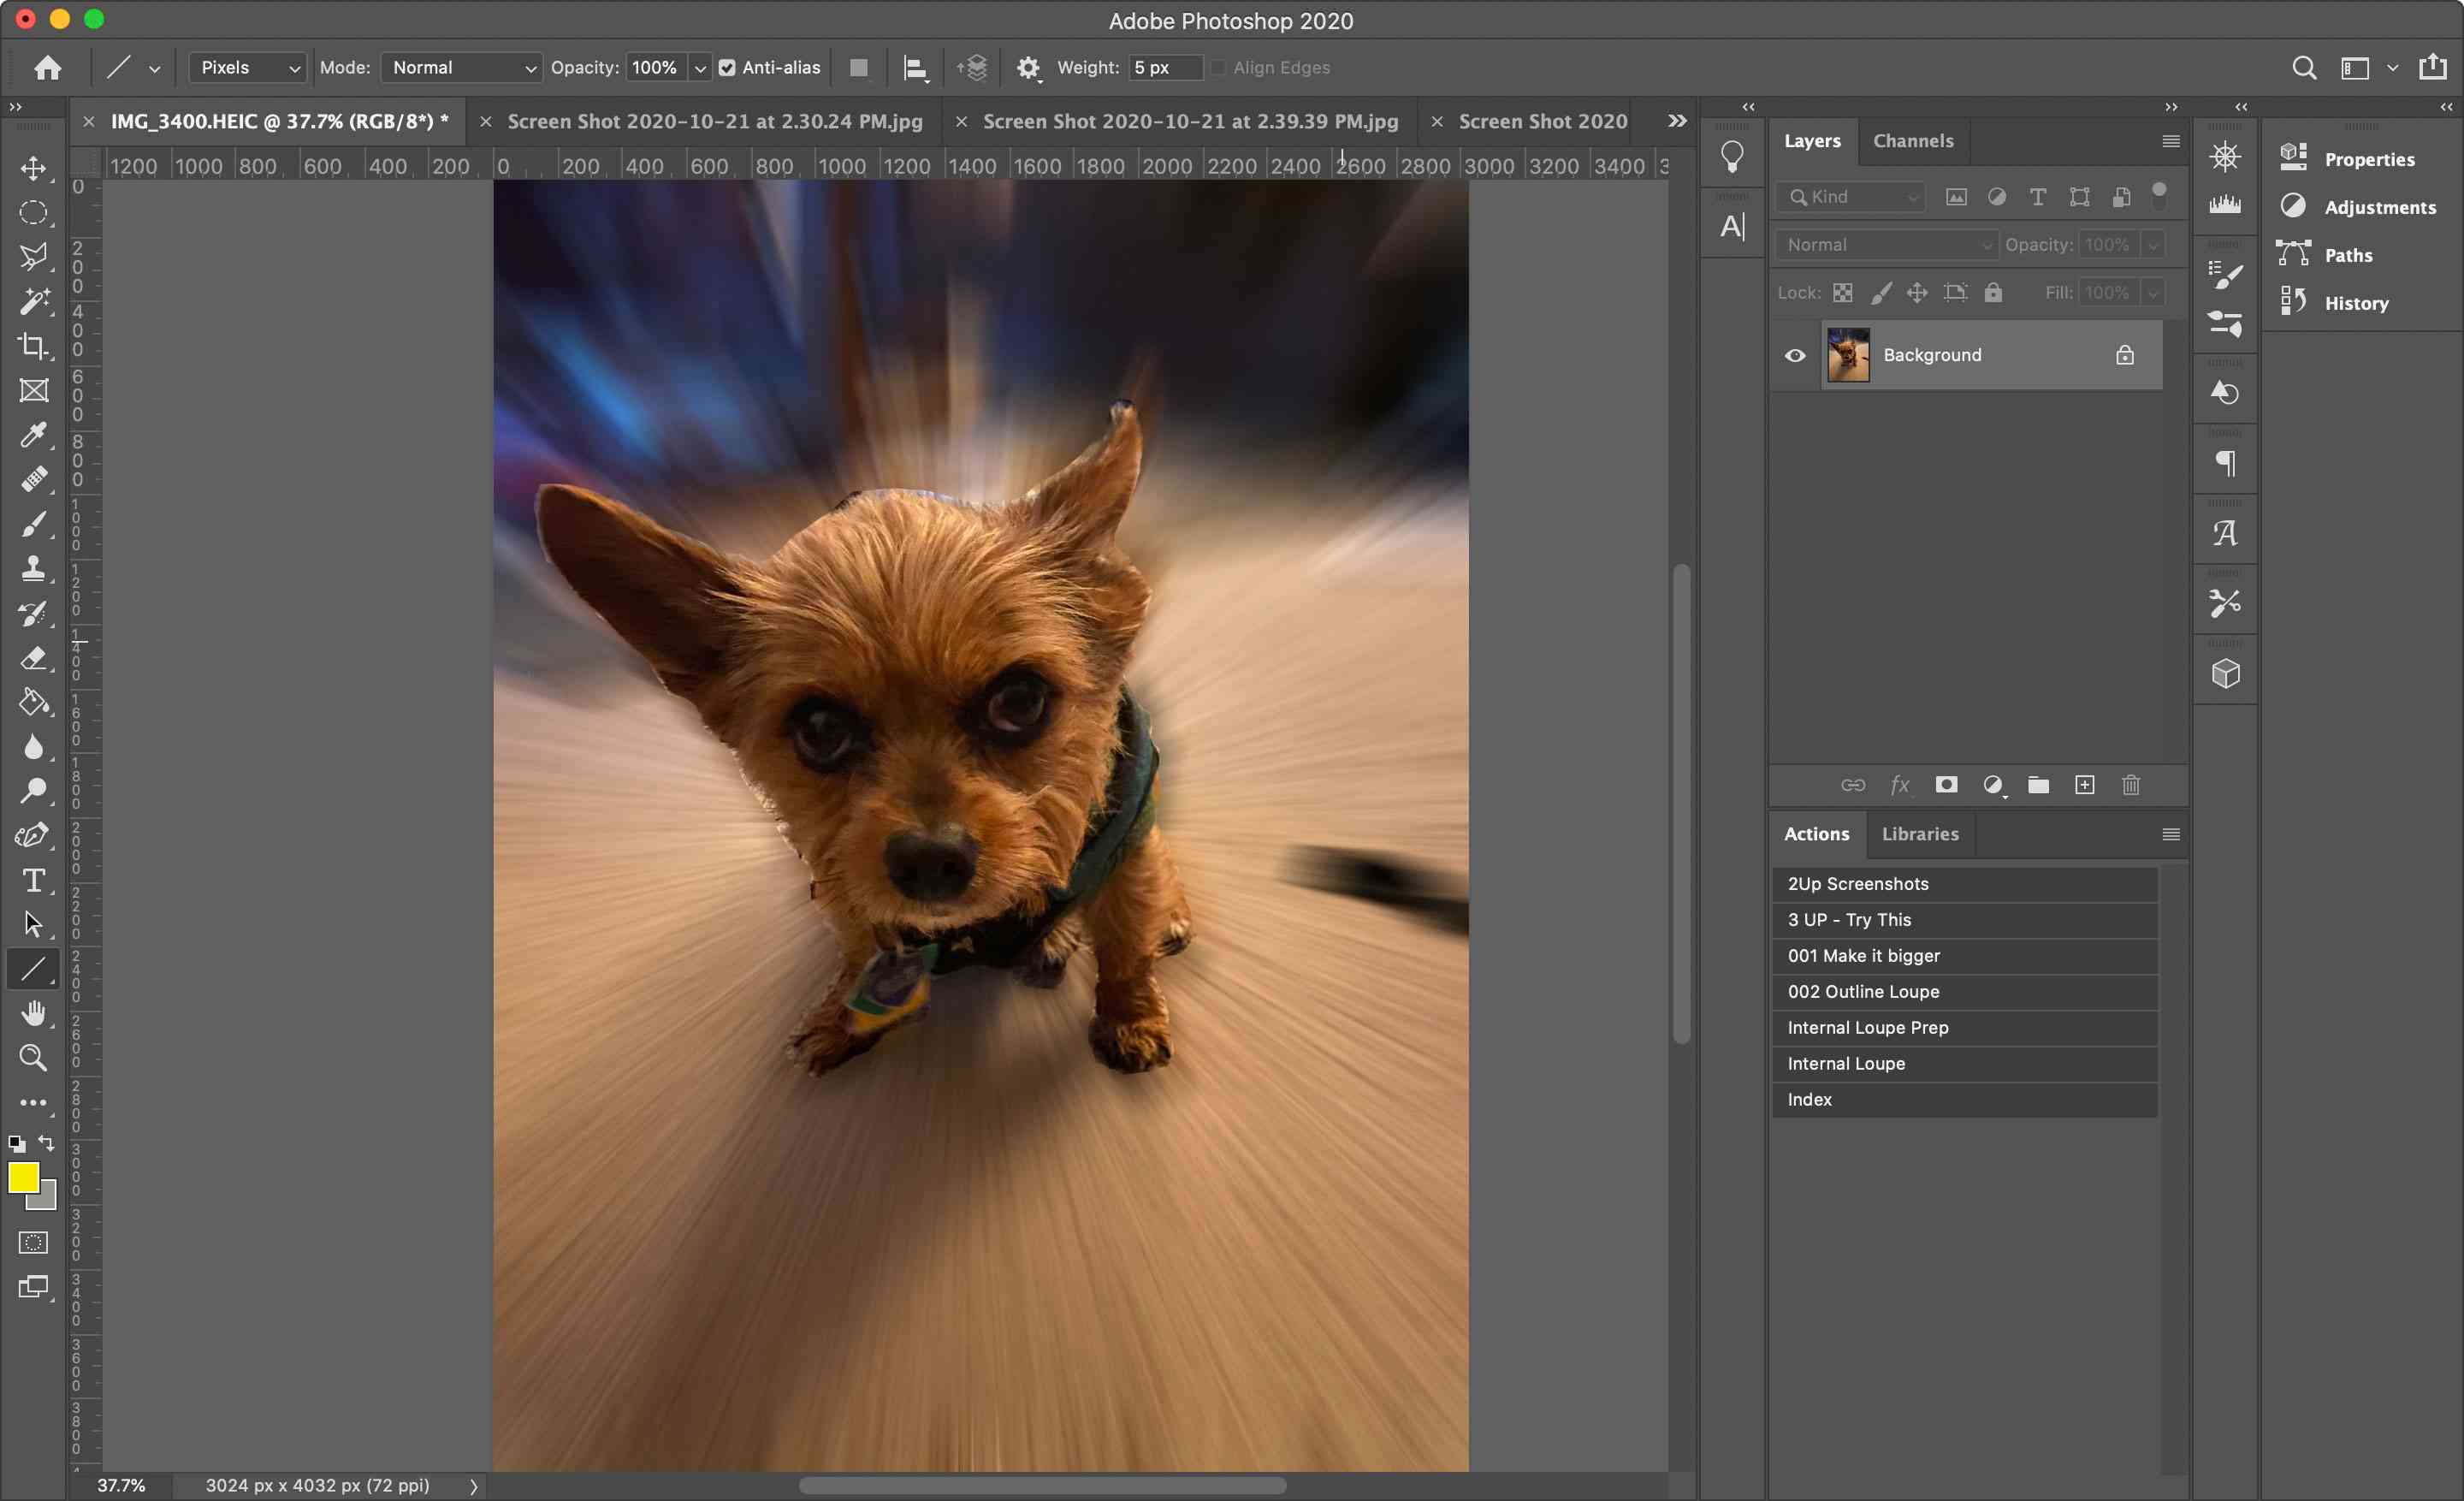 An image in Photoshop with a Radial Blur applied to it